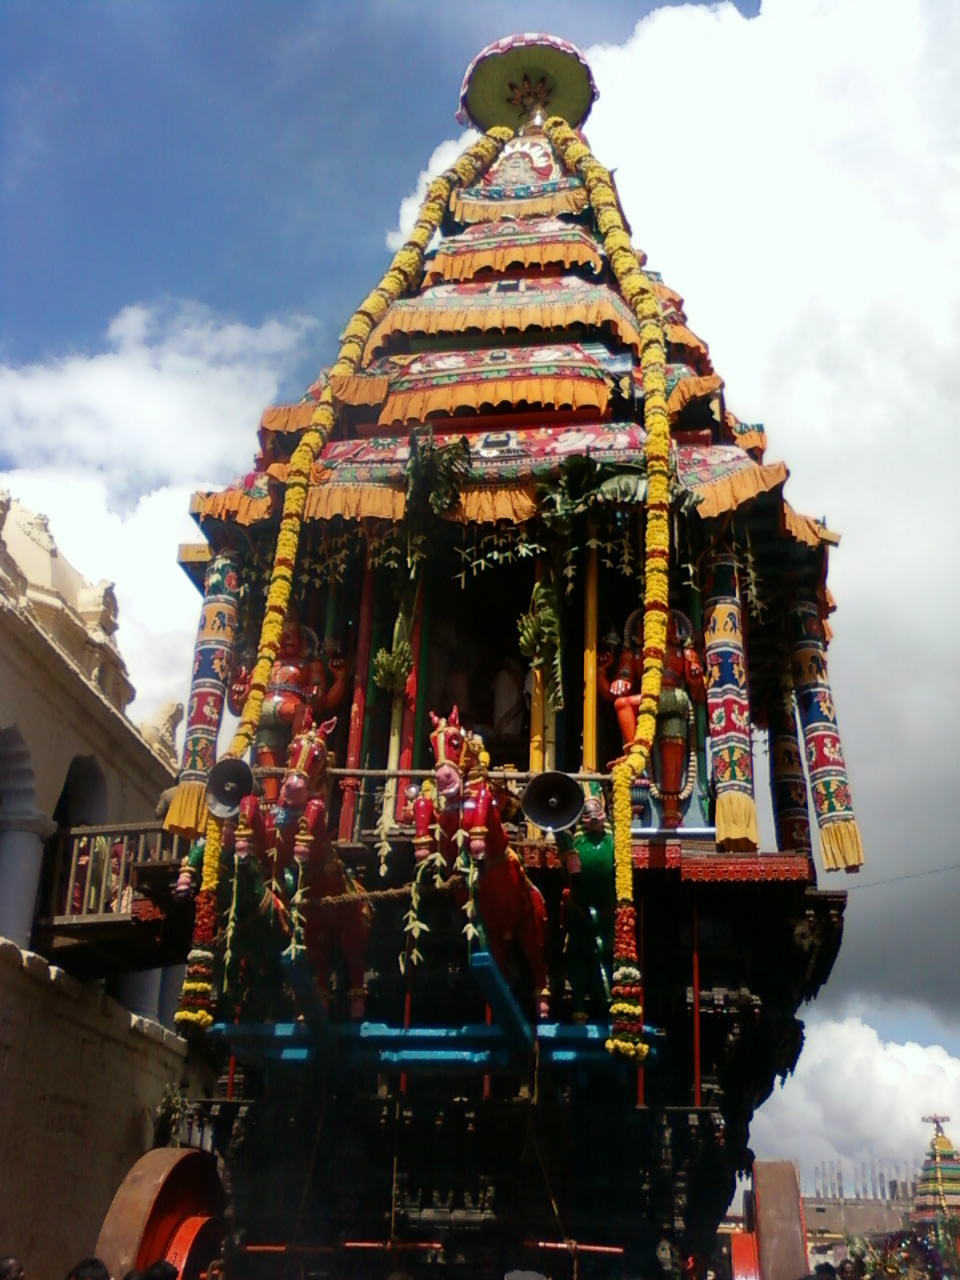 File:Tiruvannamalai Car.jpg - Wikipedia, the free encyclopedia